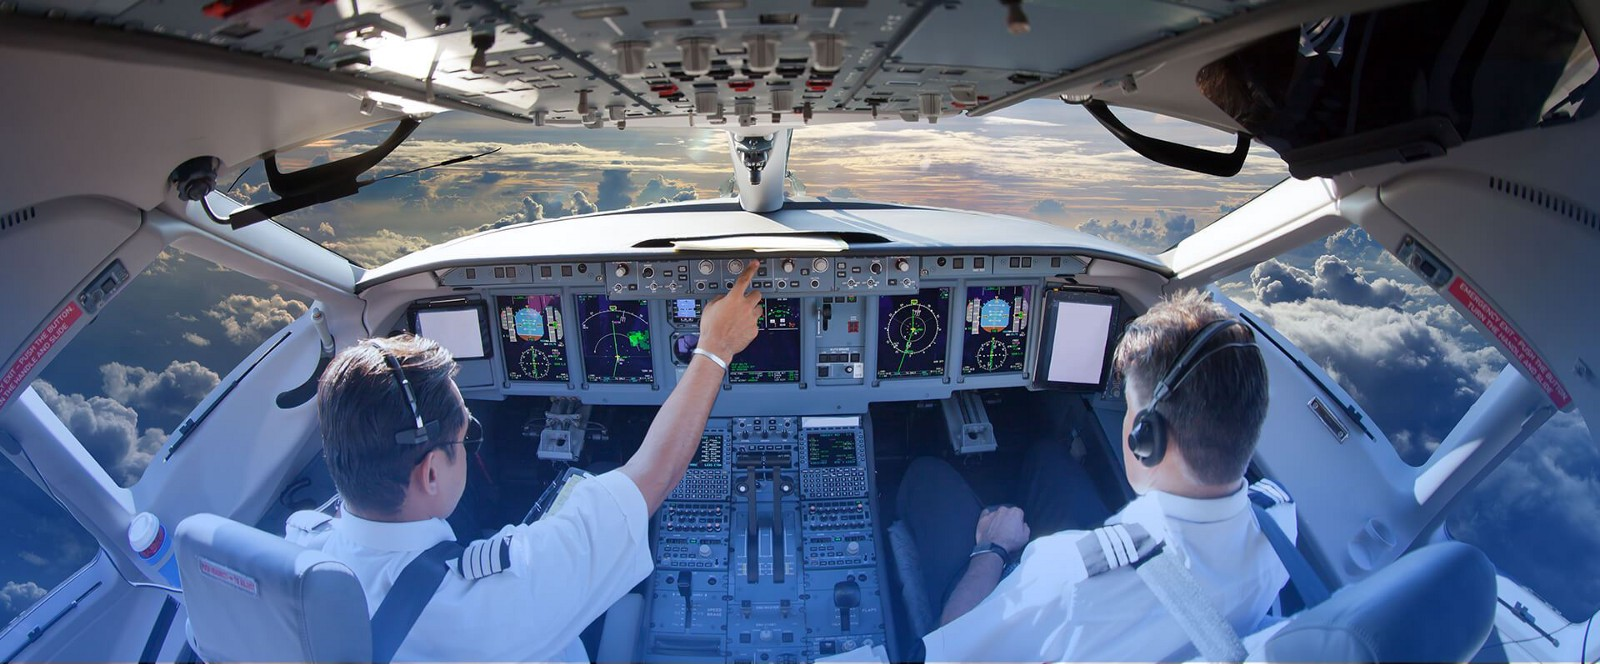 What Is Best Source For Aircraft Cockpit Parts Pilot Supplies Of An How Looks